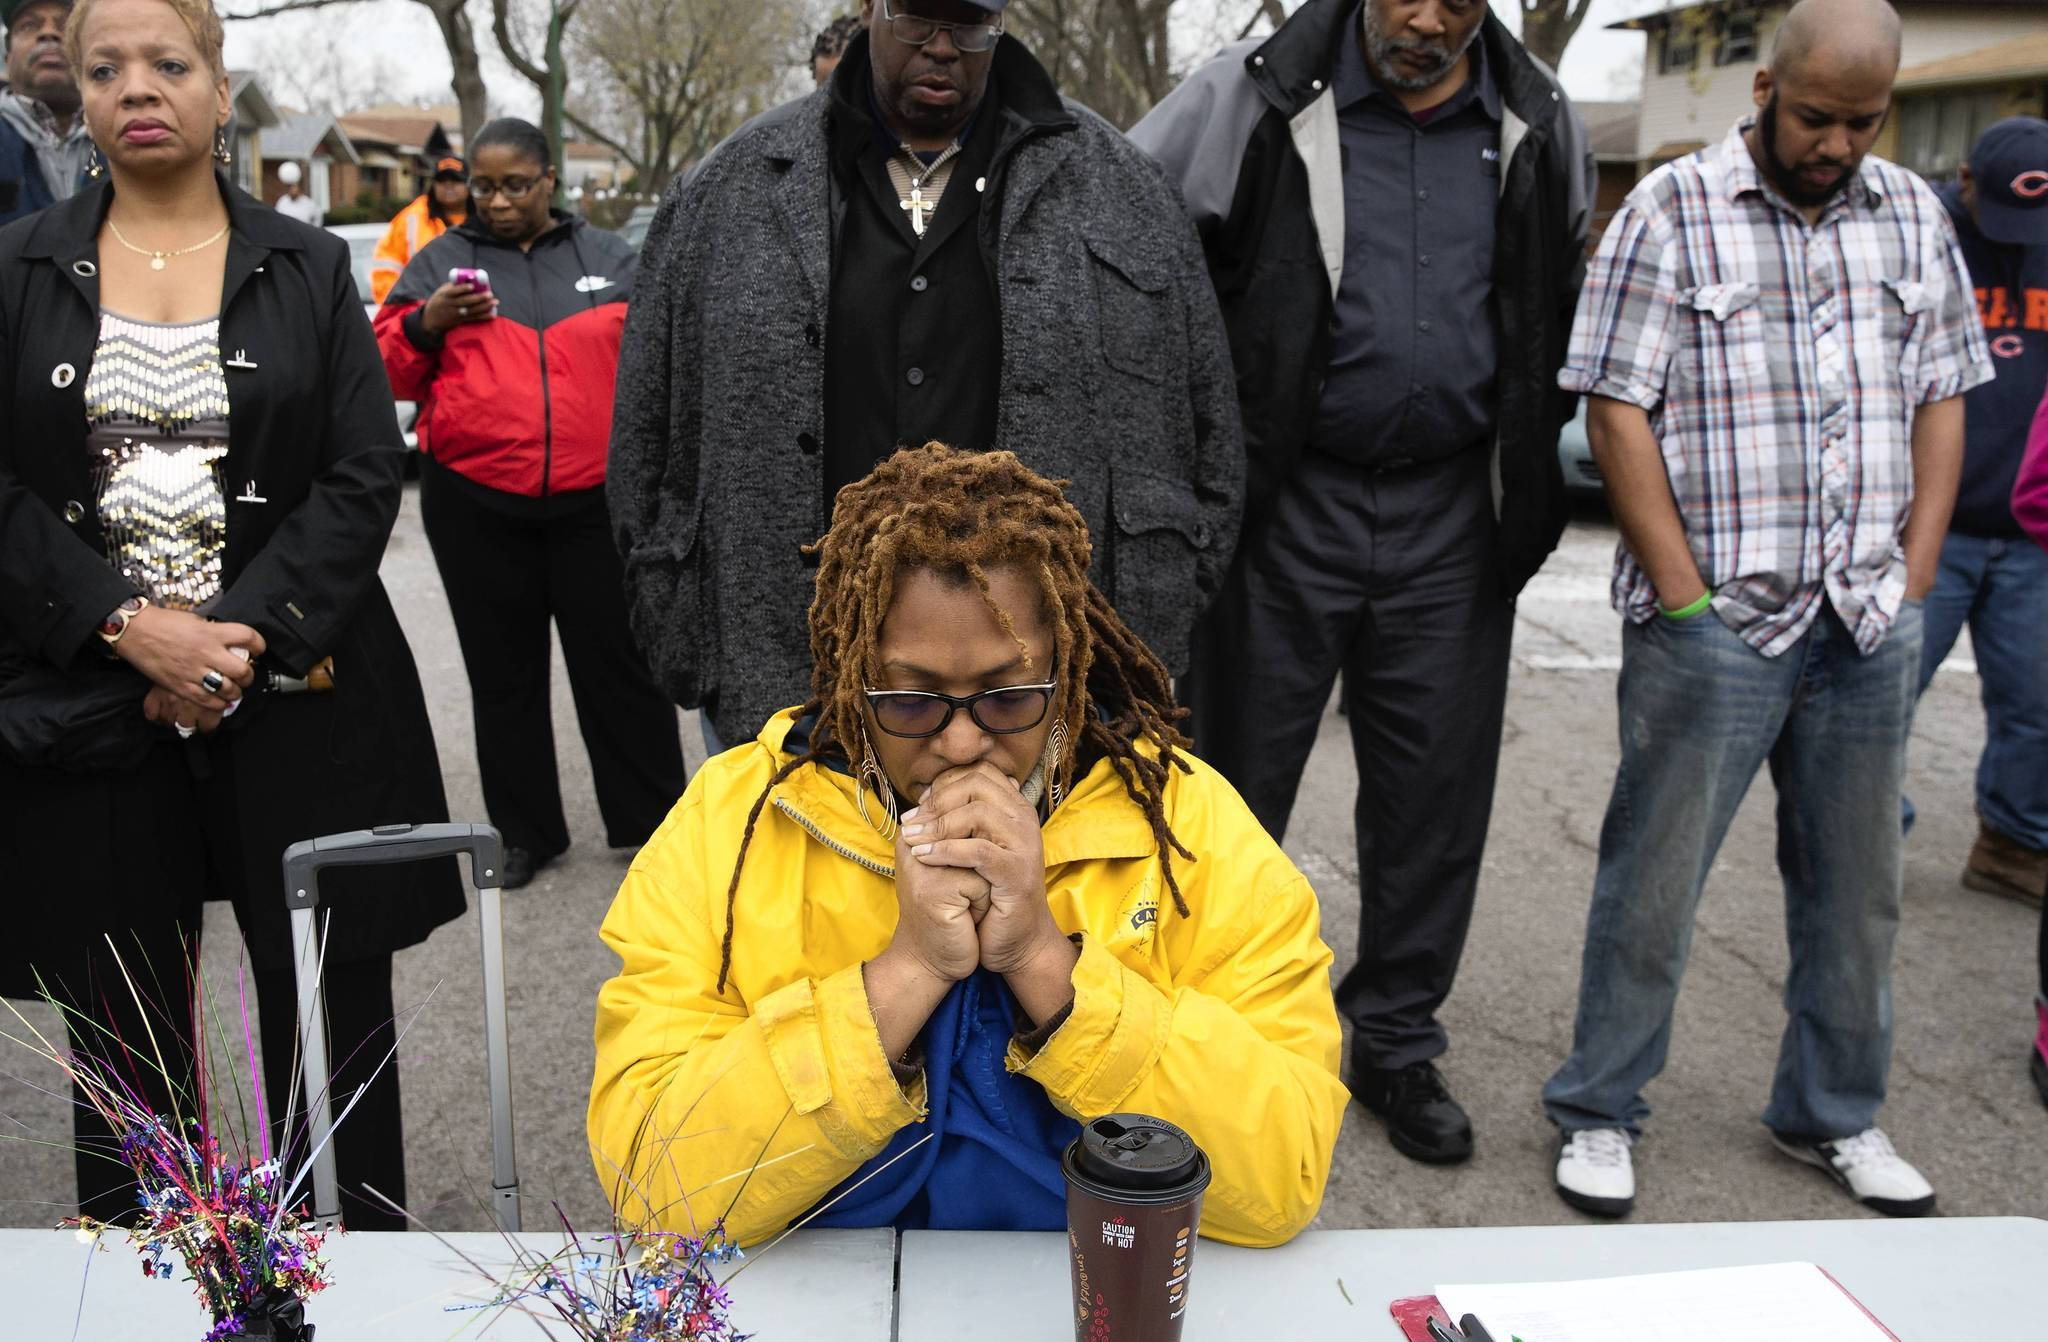 Residents pray at a rally against gun violence in the West Pullman neighborhood after the shooting death of community activist Leonore Draper.